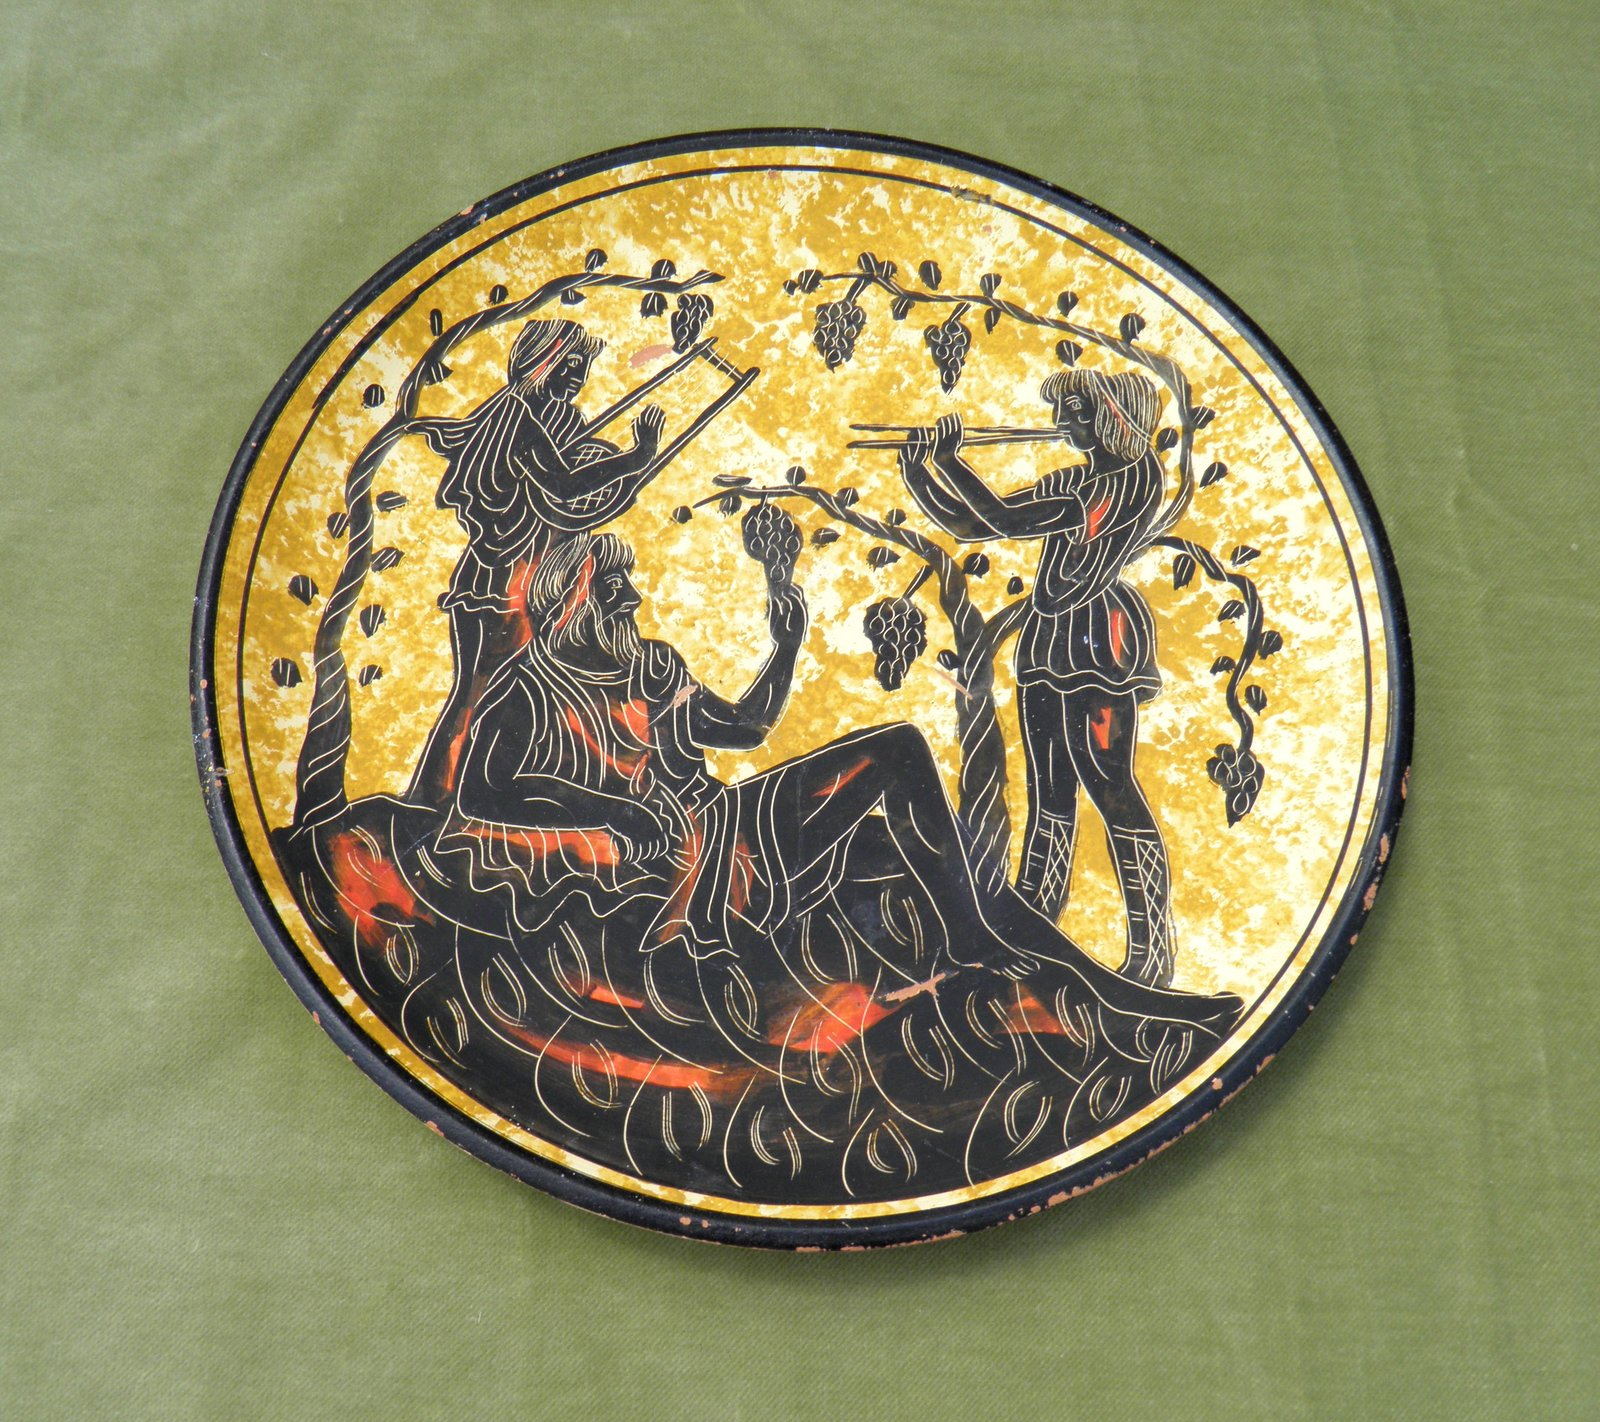 Decorative Wall Plates Nz : Hand painted wall plate from greece